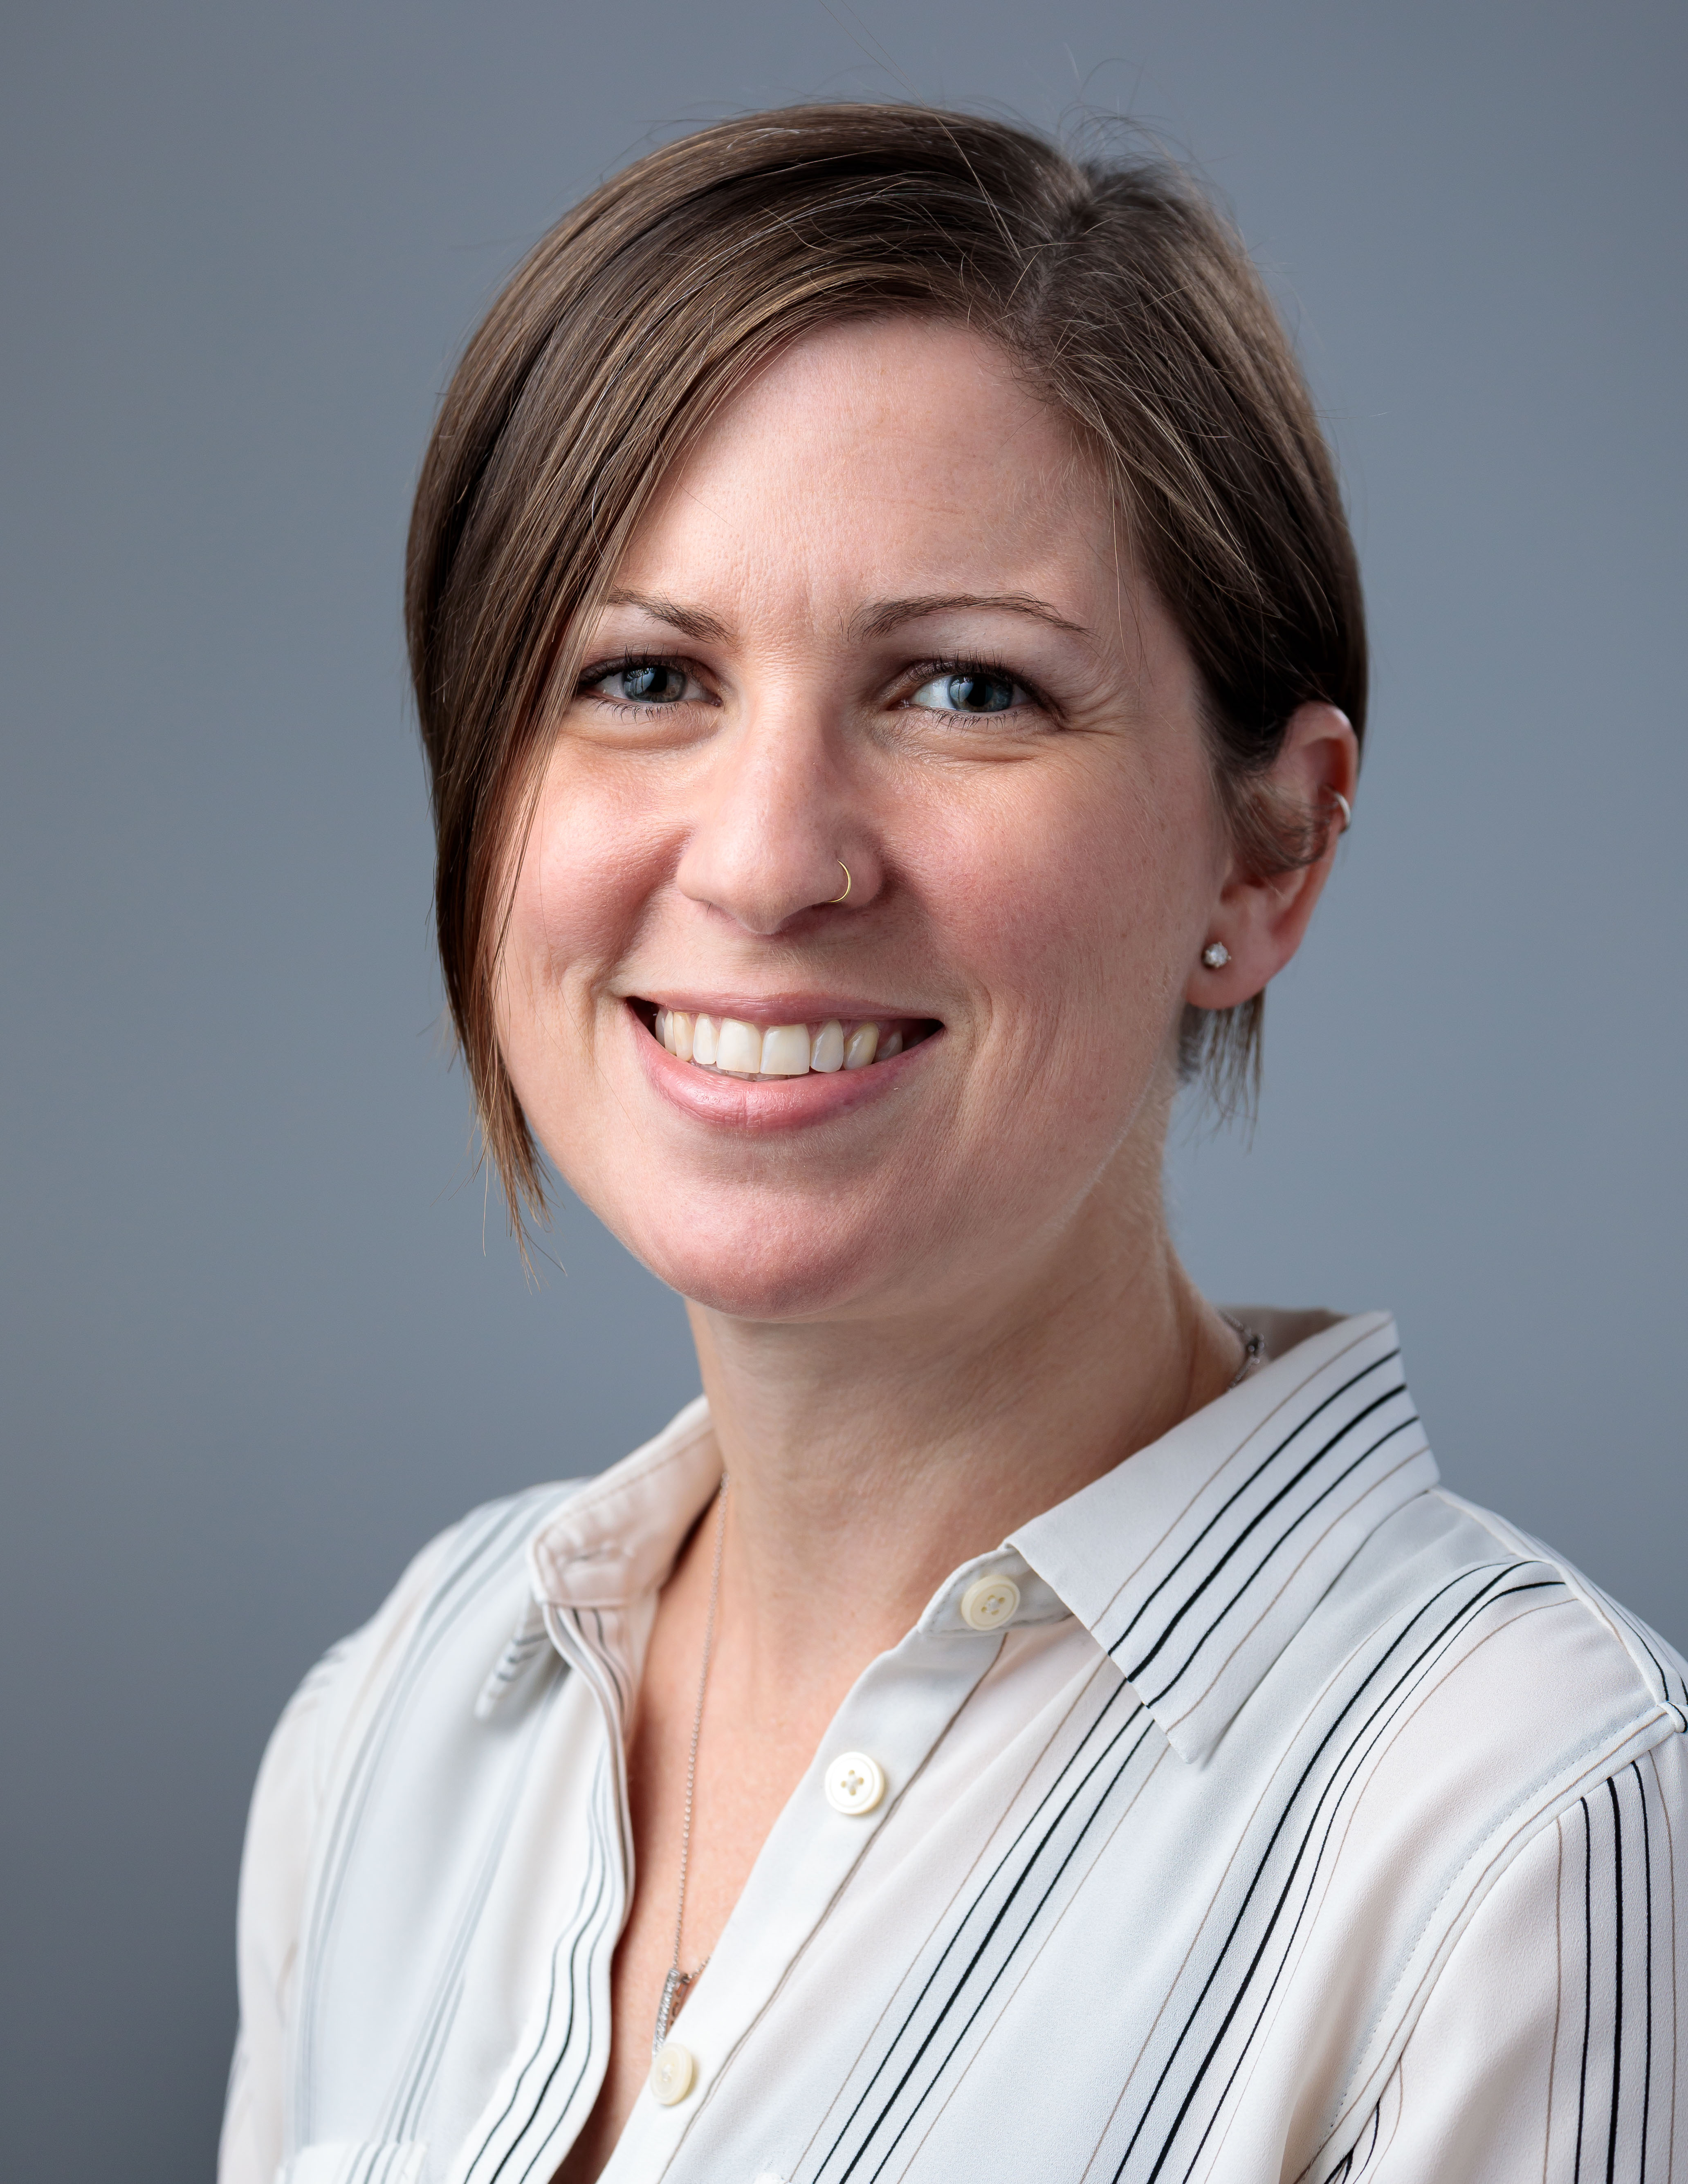 A researcher with short brown hair and a striped collared shirt poses for a headshot.